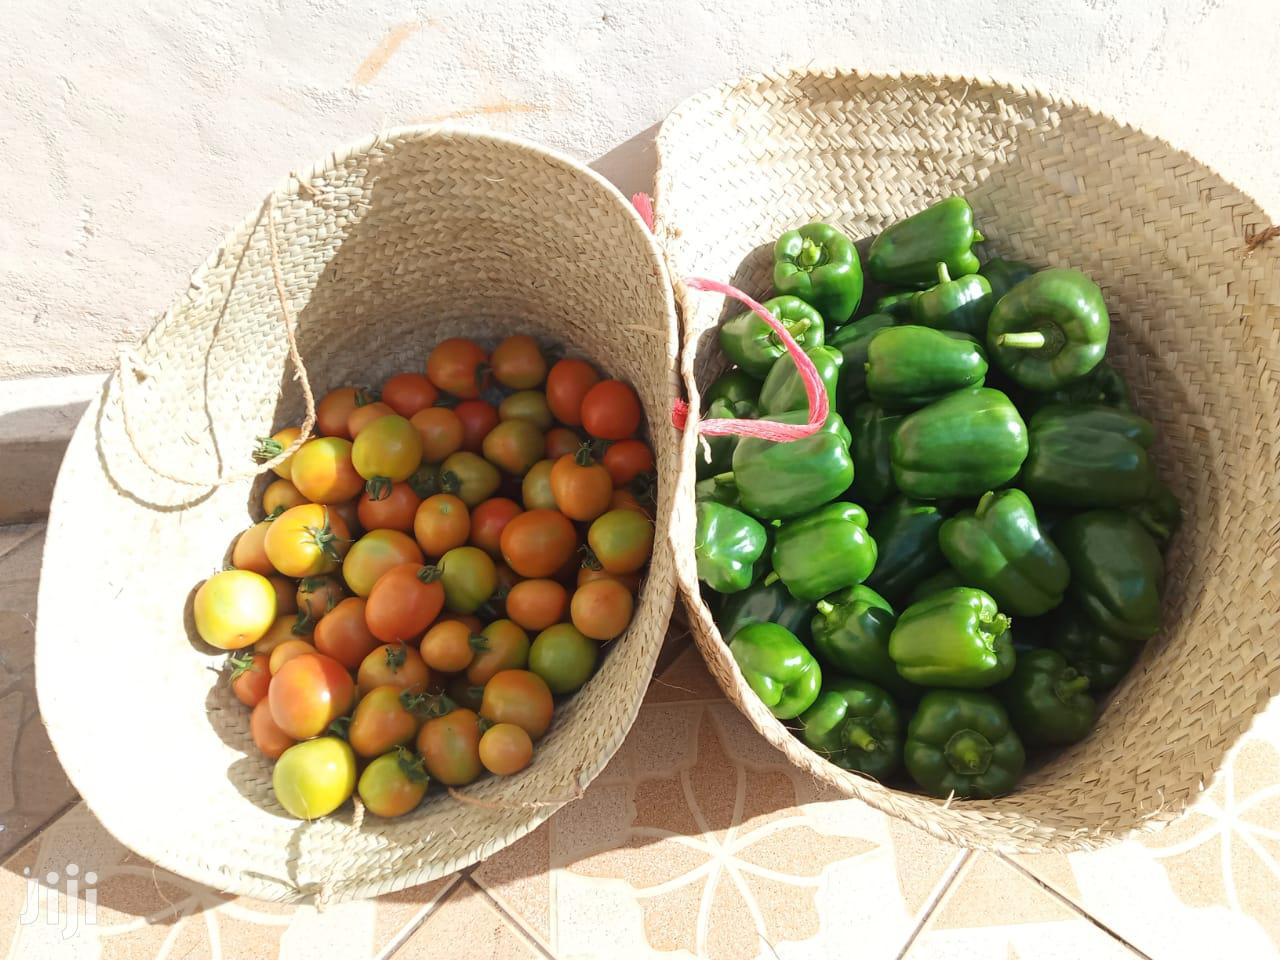 Archive: Organic Tomatoes And Green Peppers